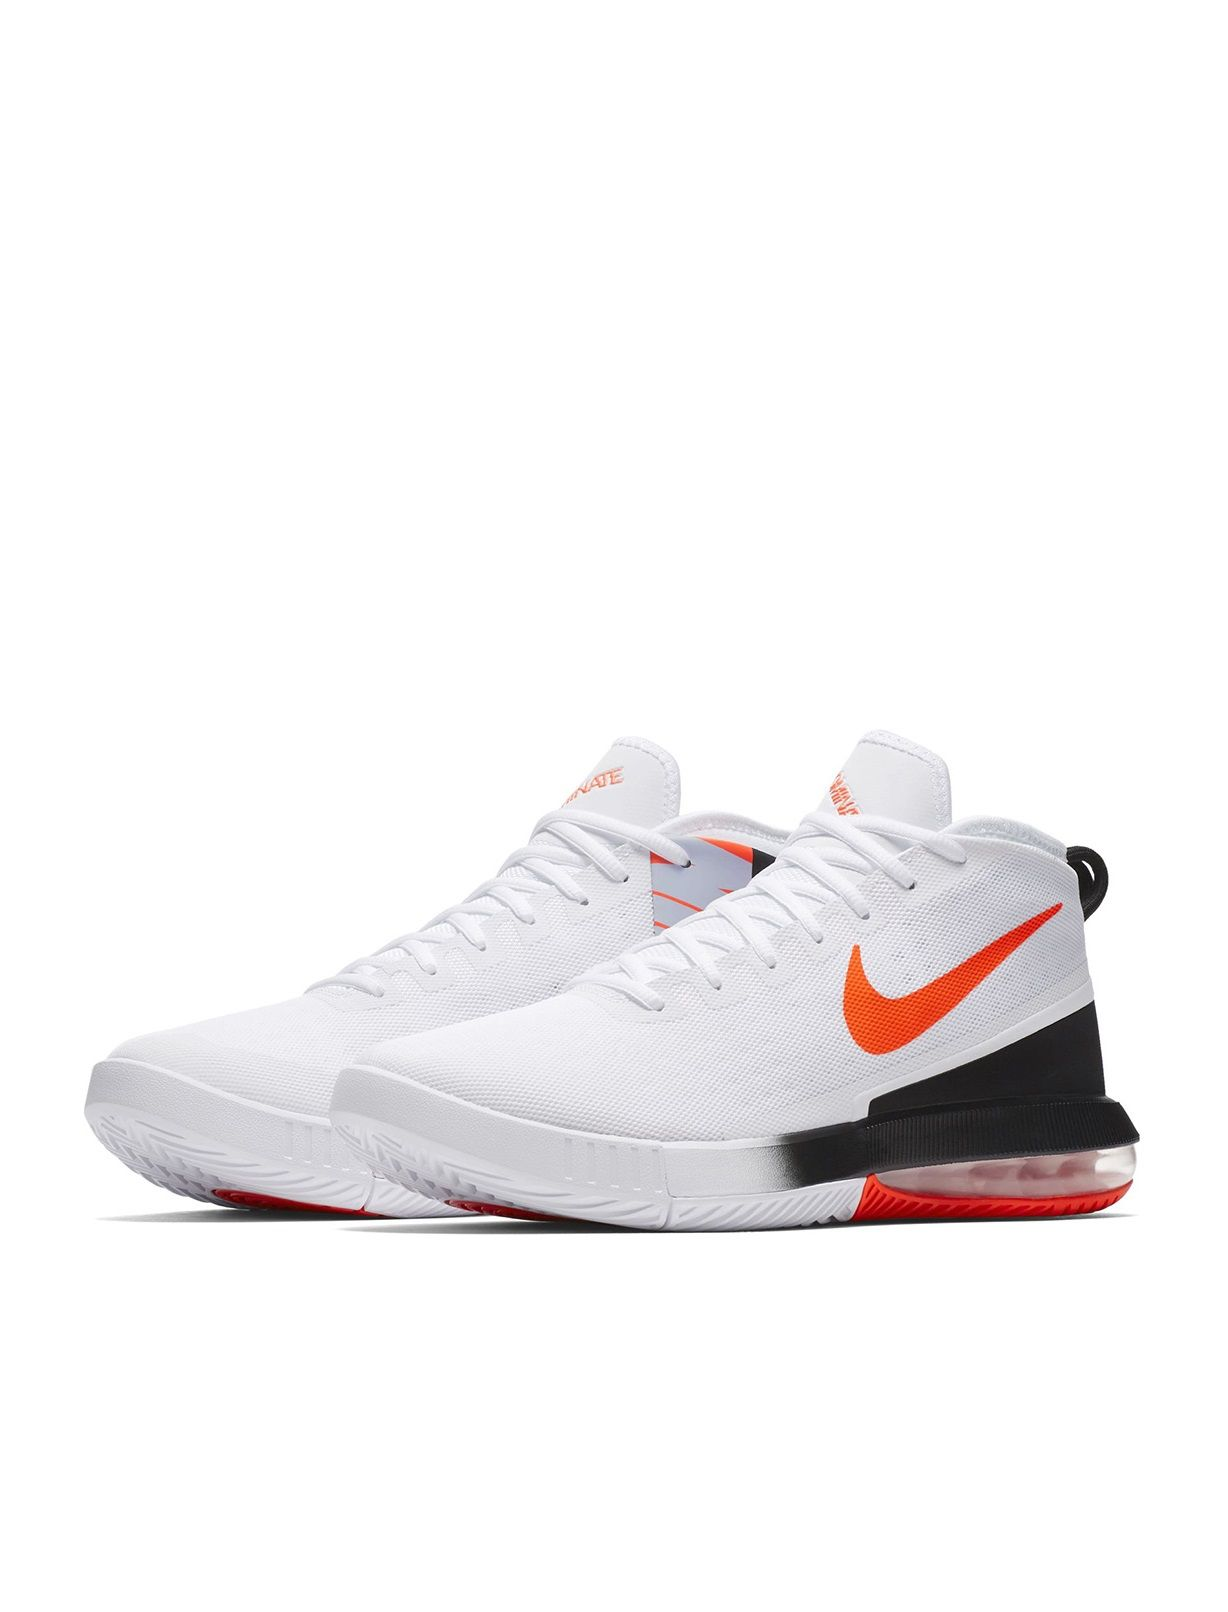 Nike Air Max Dominate Nike Air Max 8209a918fc